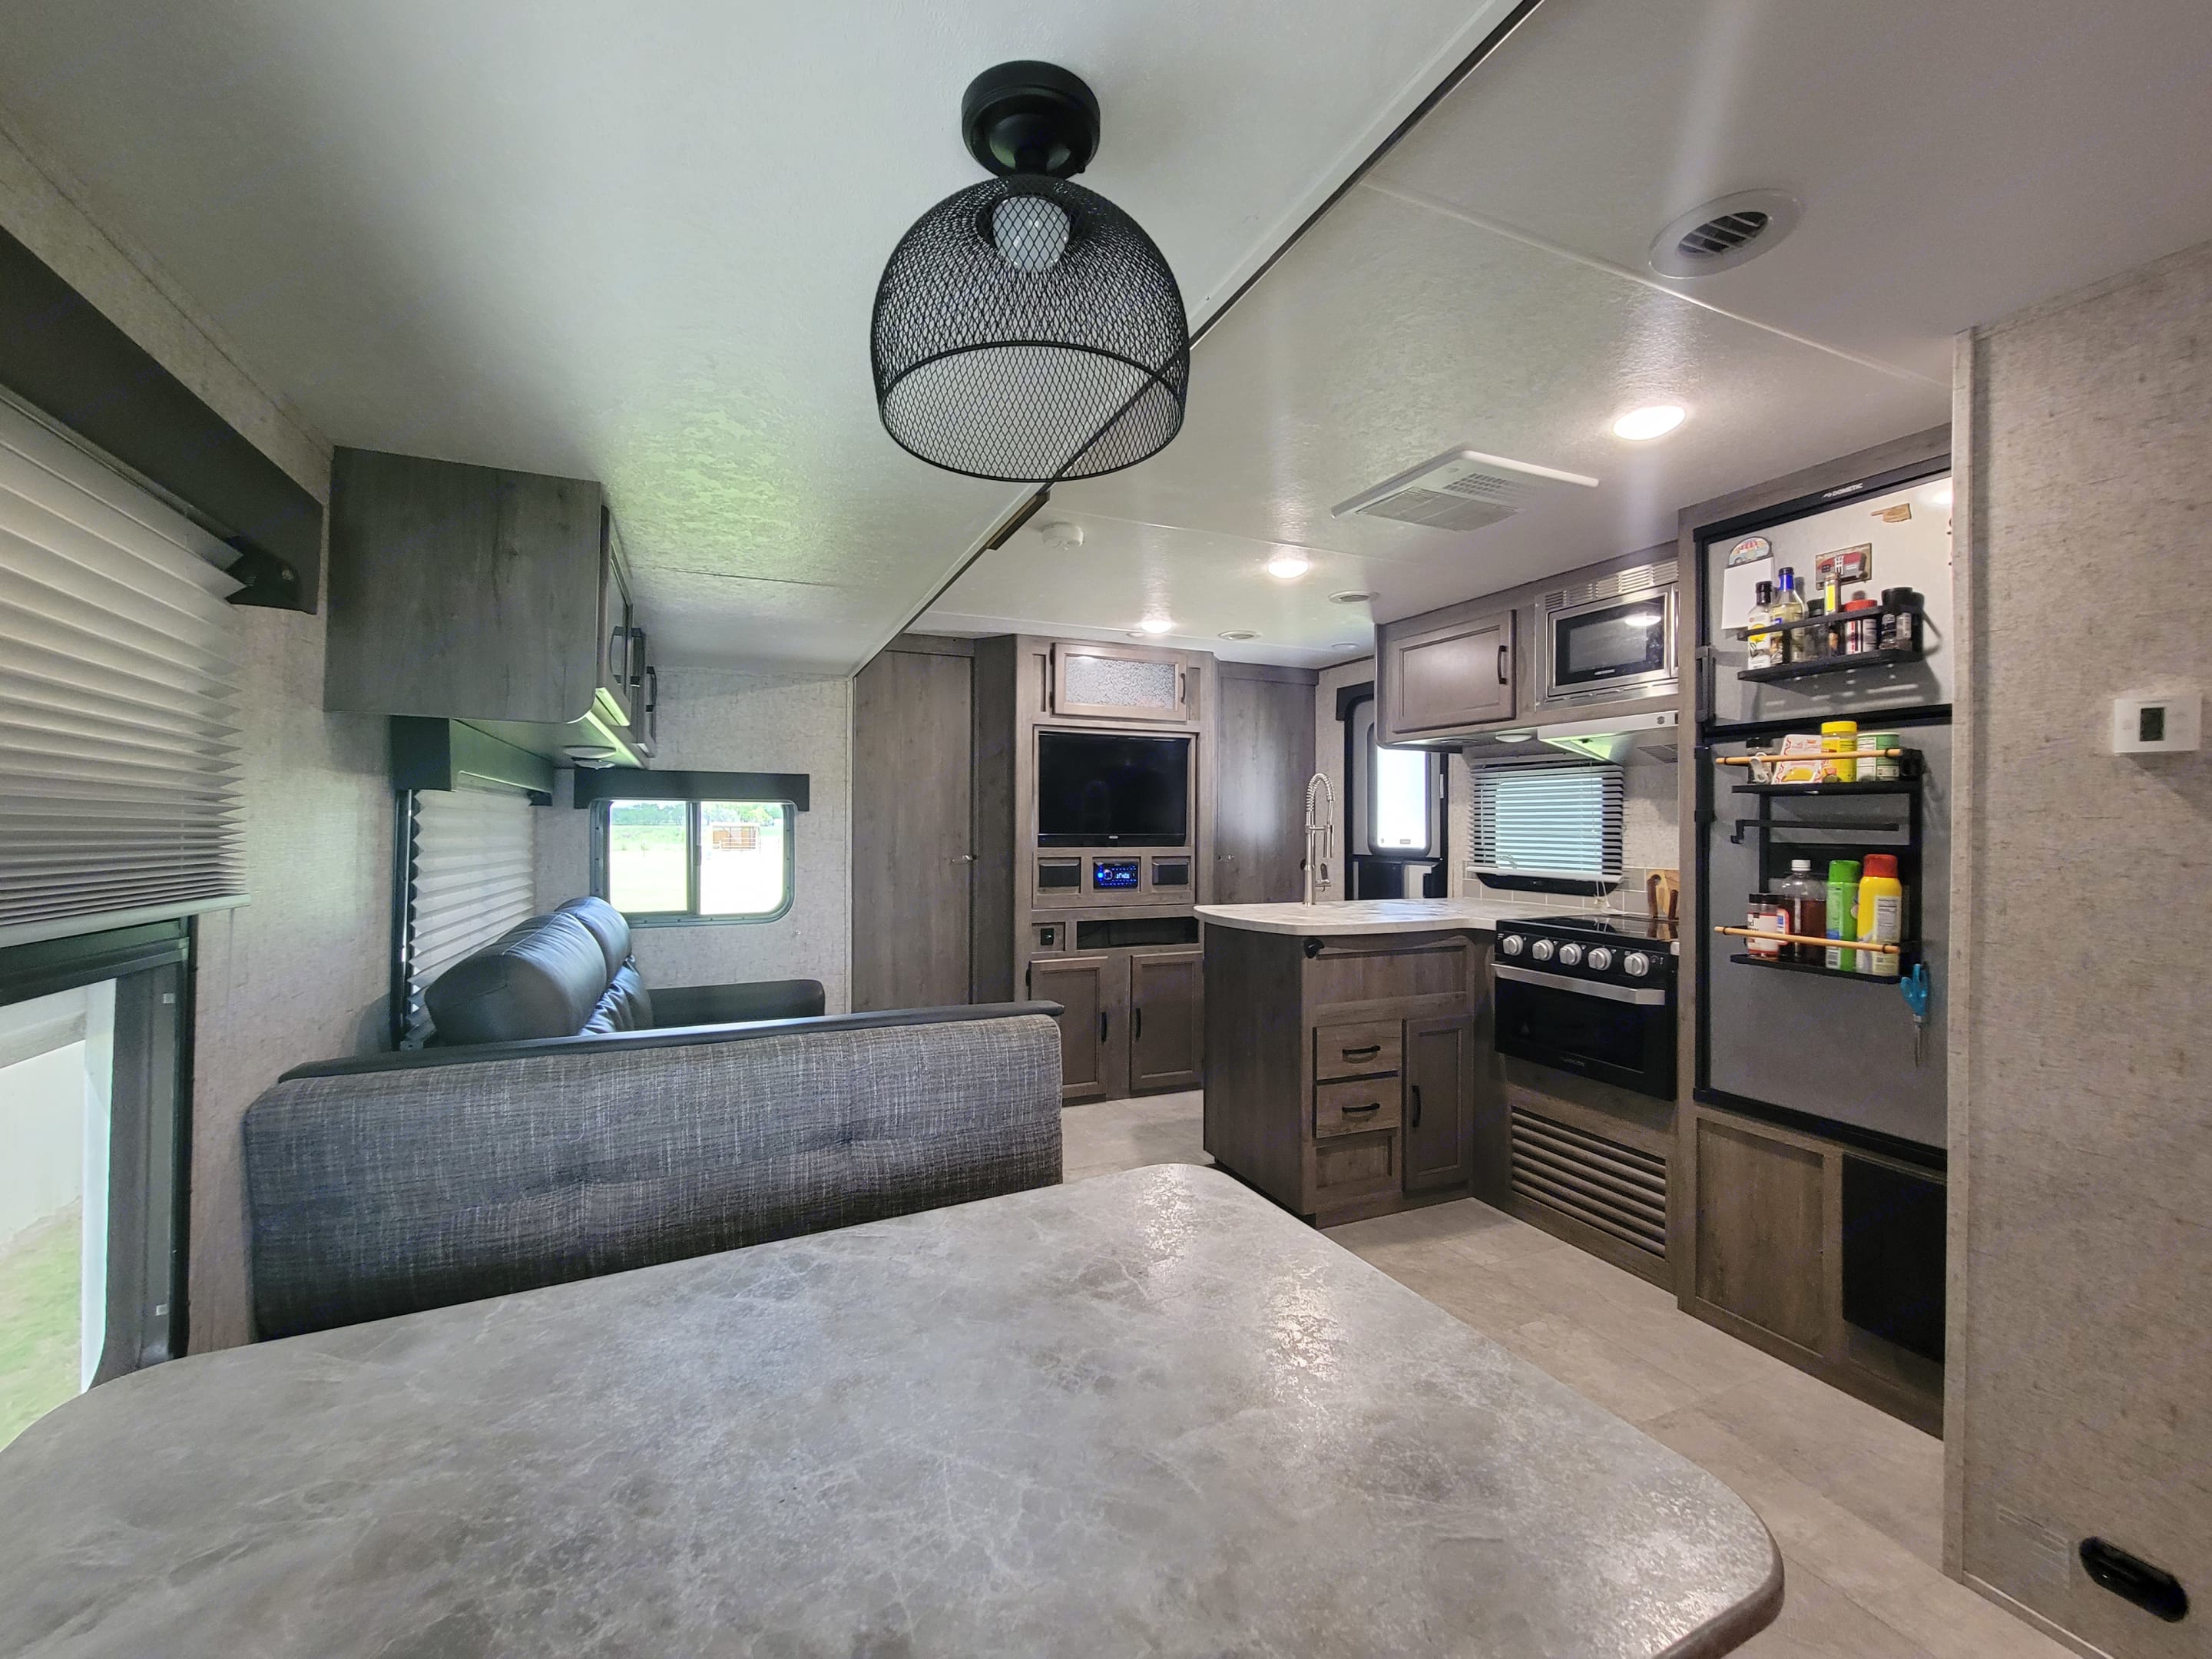 Room 2 Roam kitchen can accommodate any meal you have planned.  (Stove-top, Oven, and Microwave). Coachmen Apex 2021